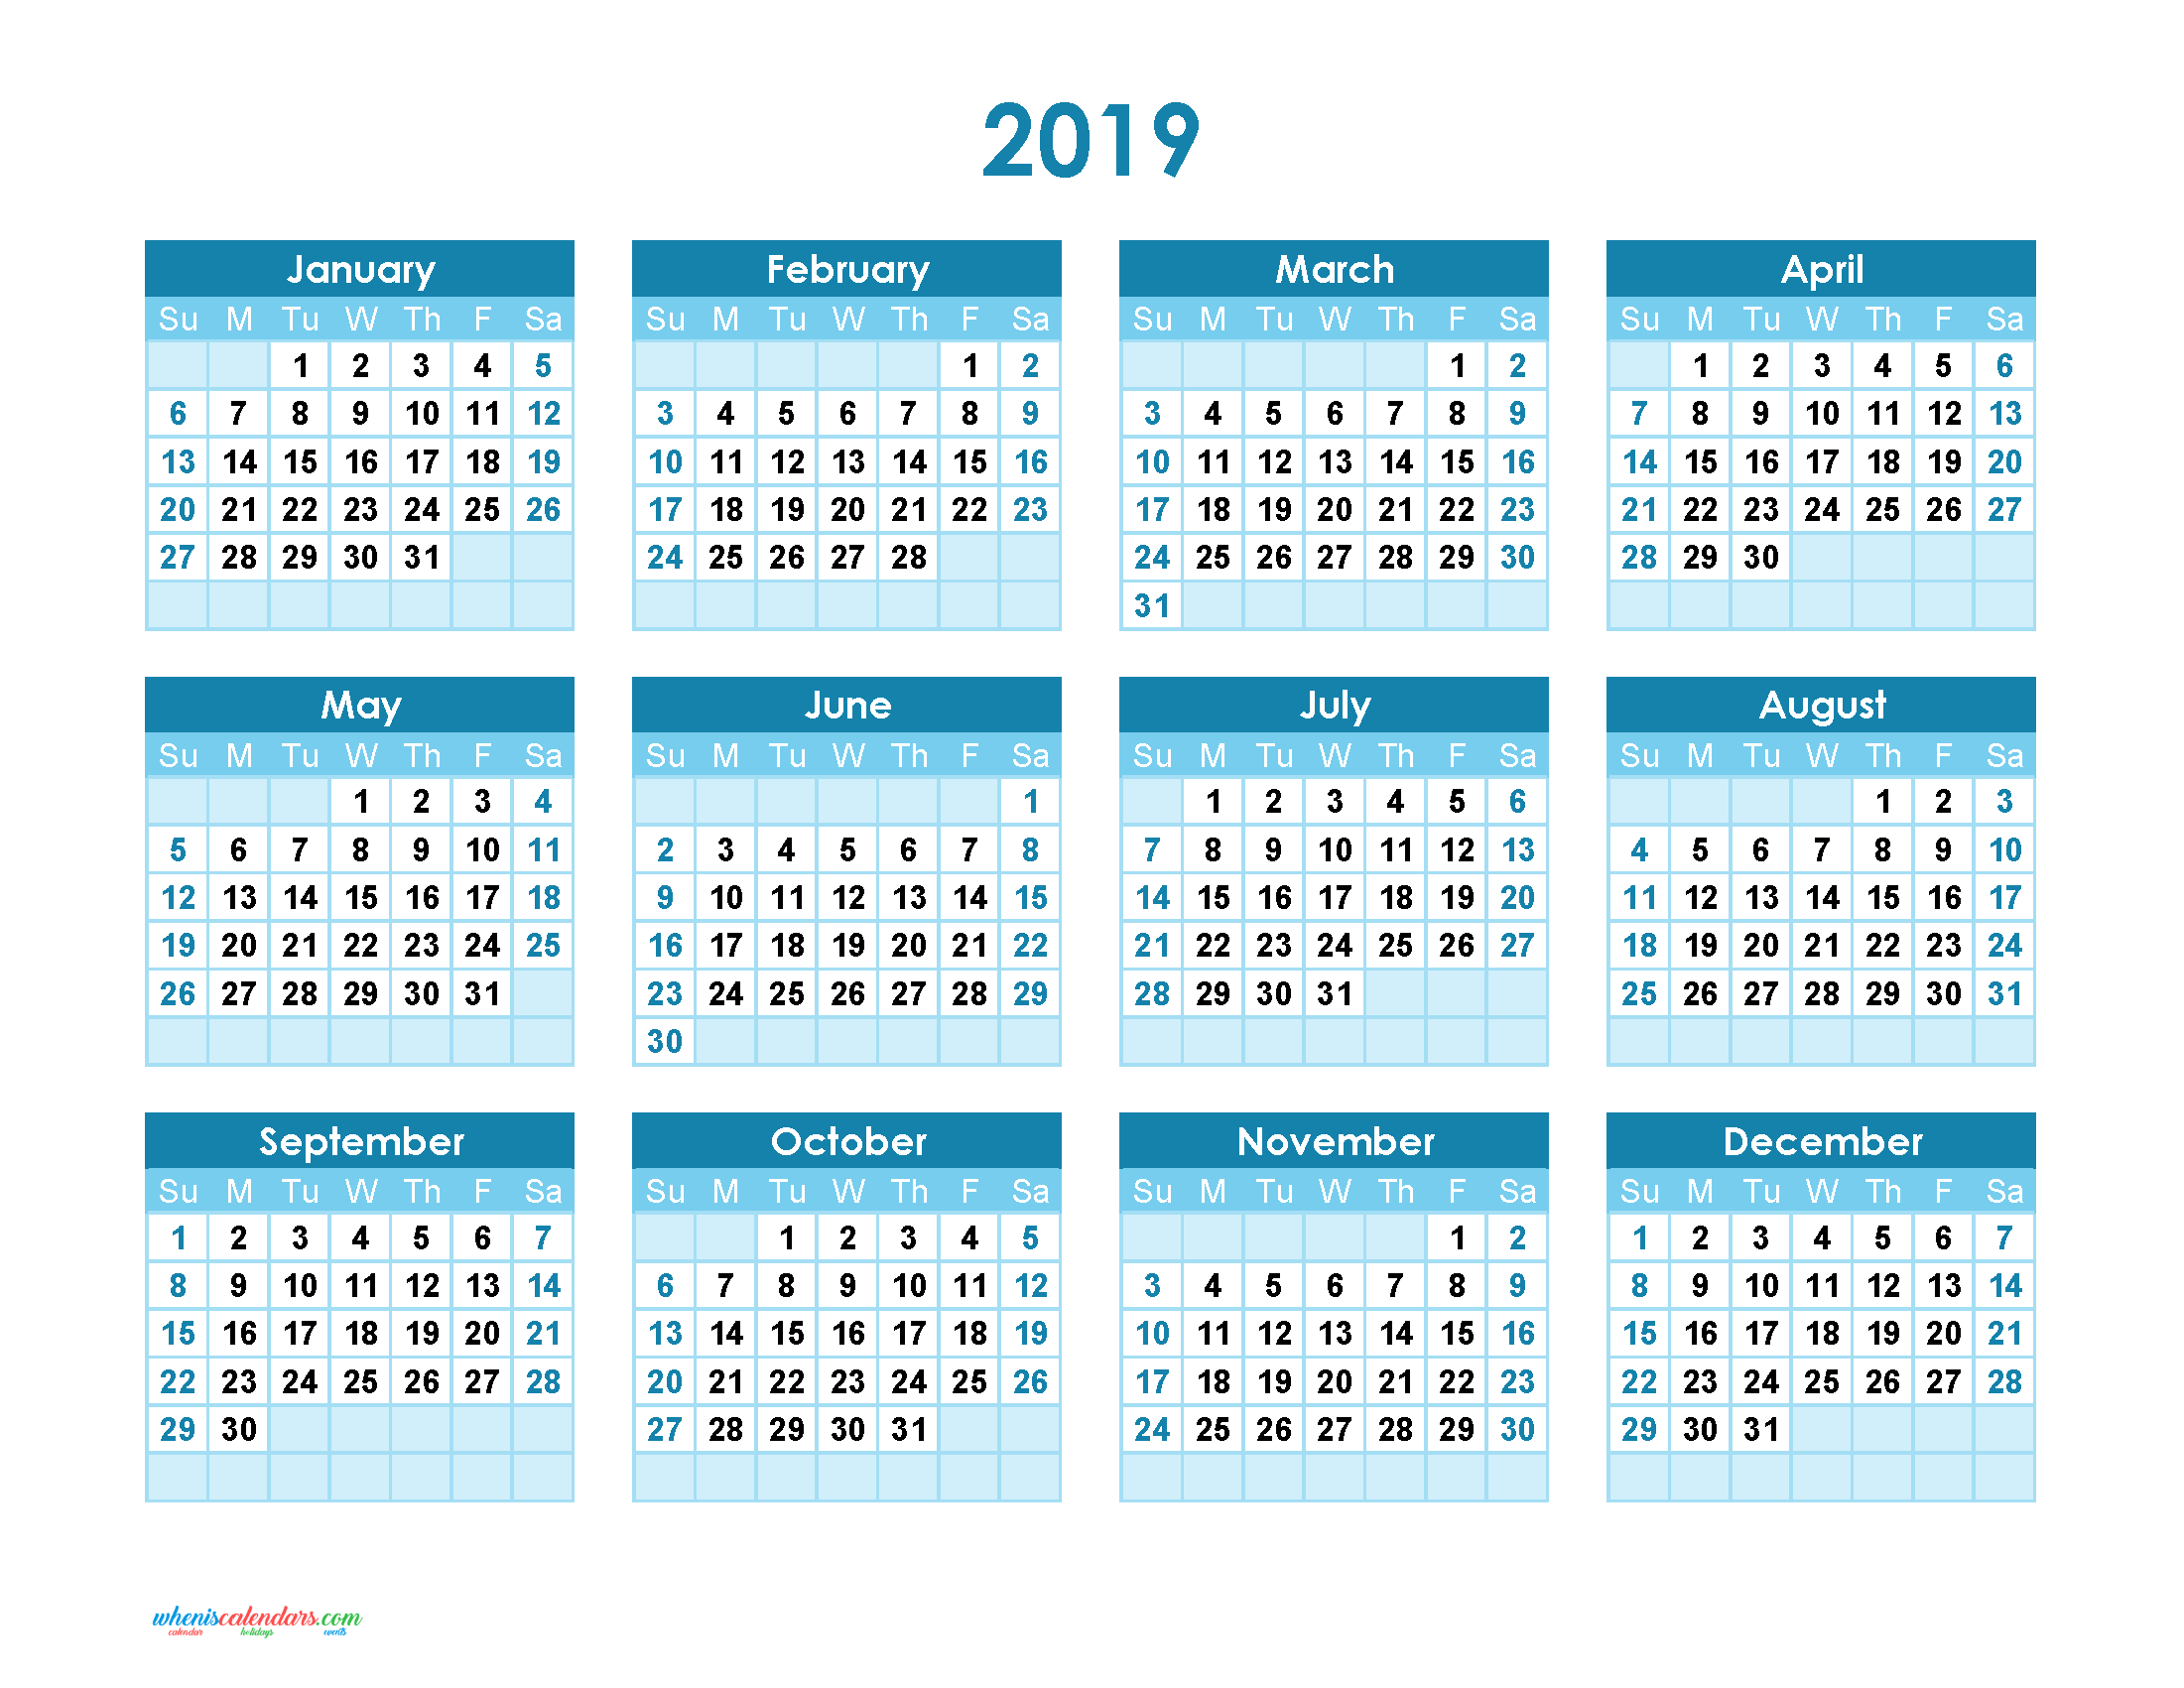 download calendar template pdf image yearly calendar 2019 printable